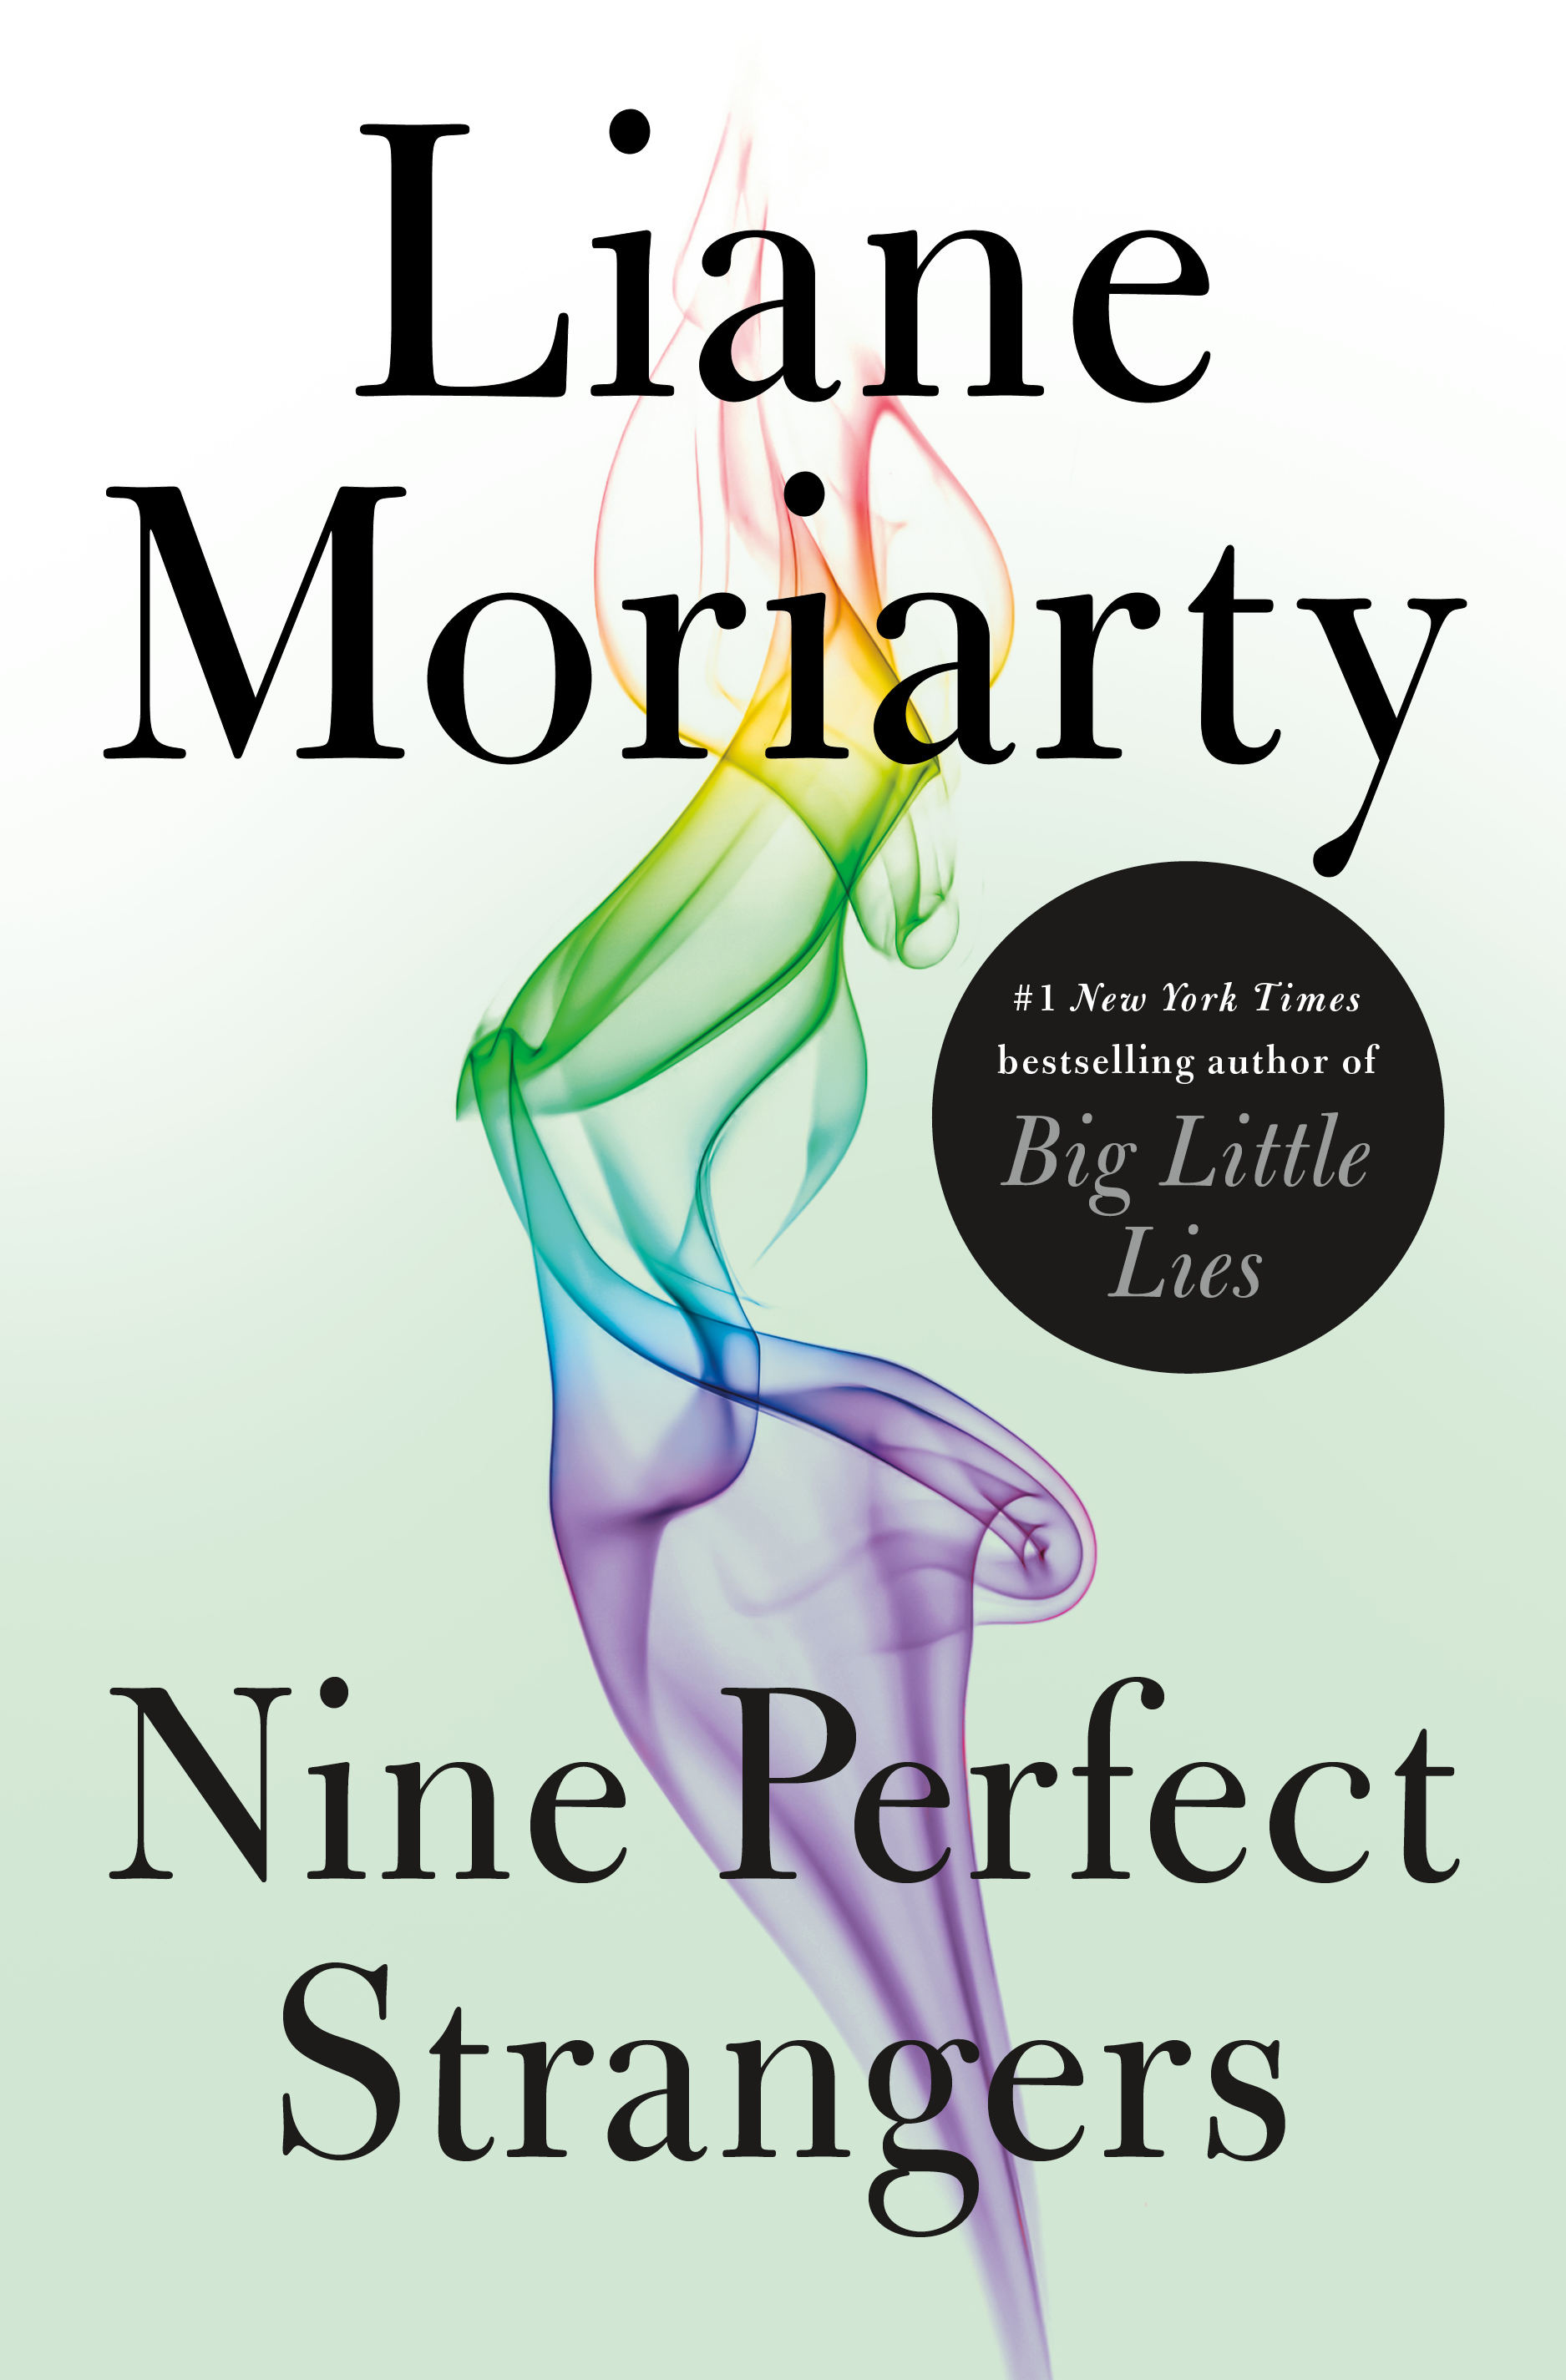 "<p>""Nine Perfect Strangers"" by Liane Moriarty (Image: Courtesy Flatiron Books){&nbsp;}</p>"